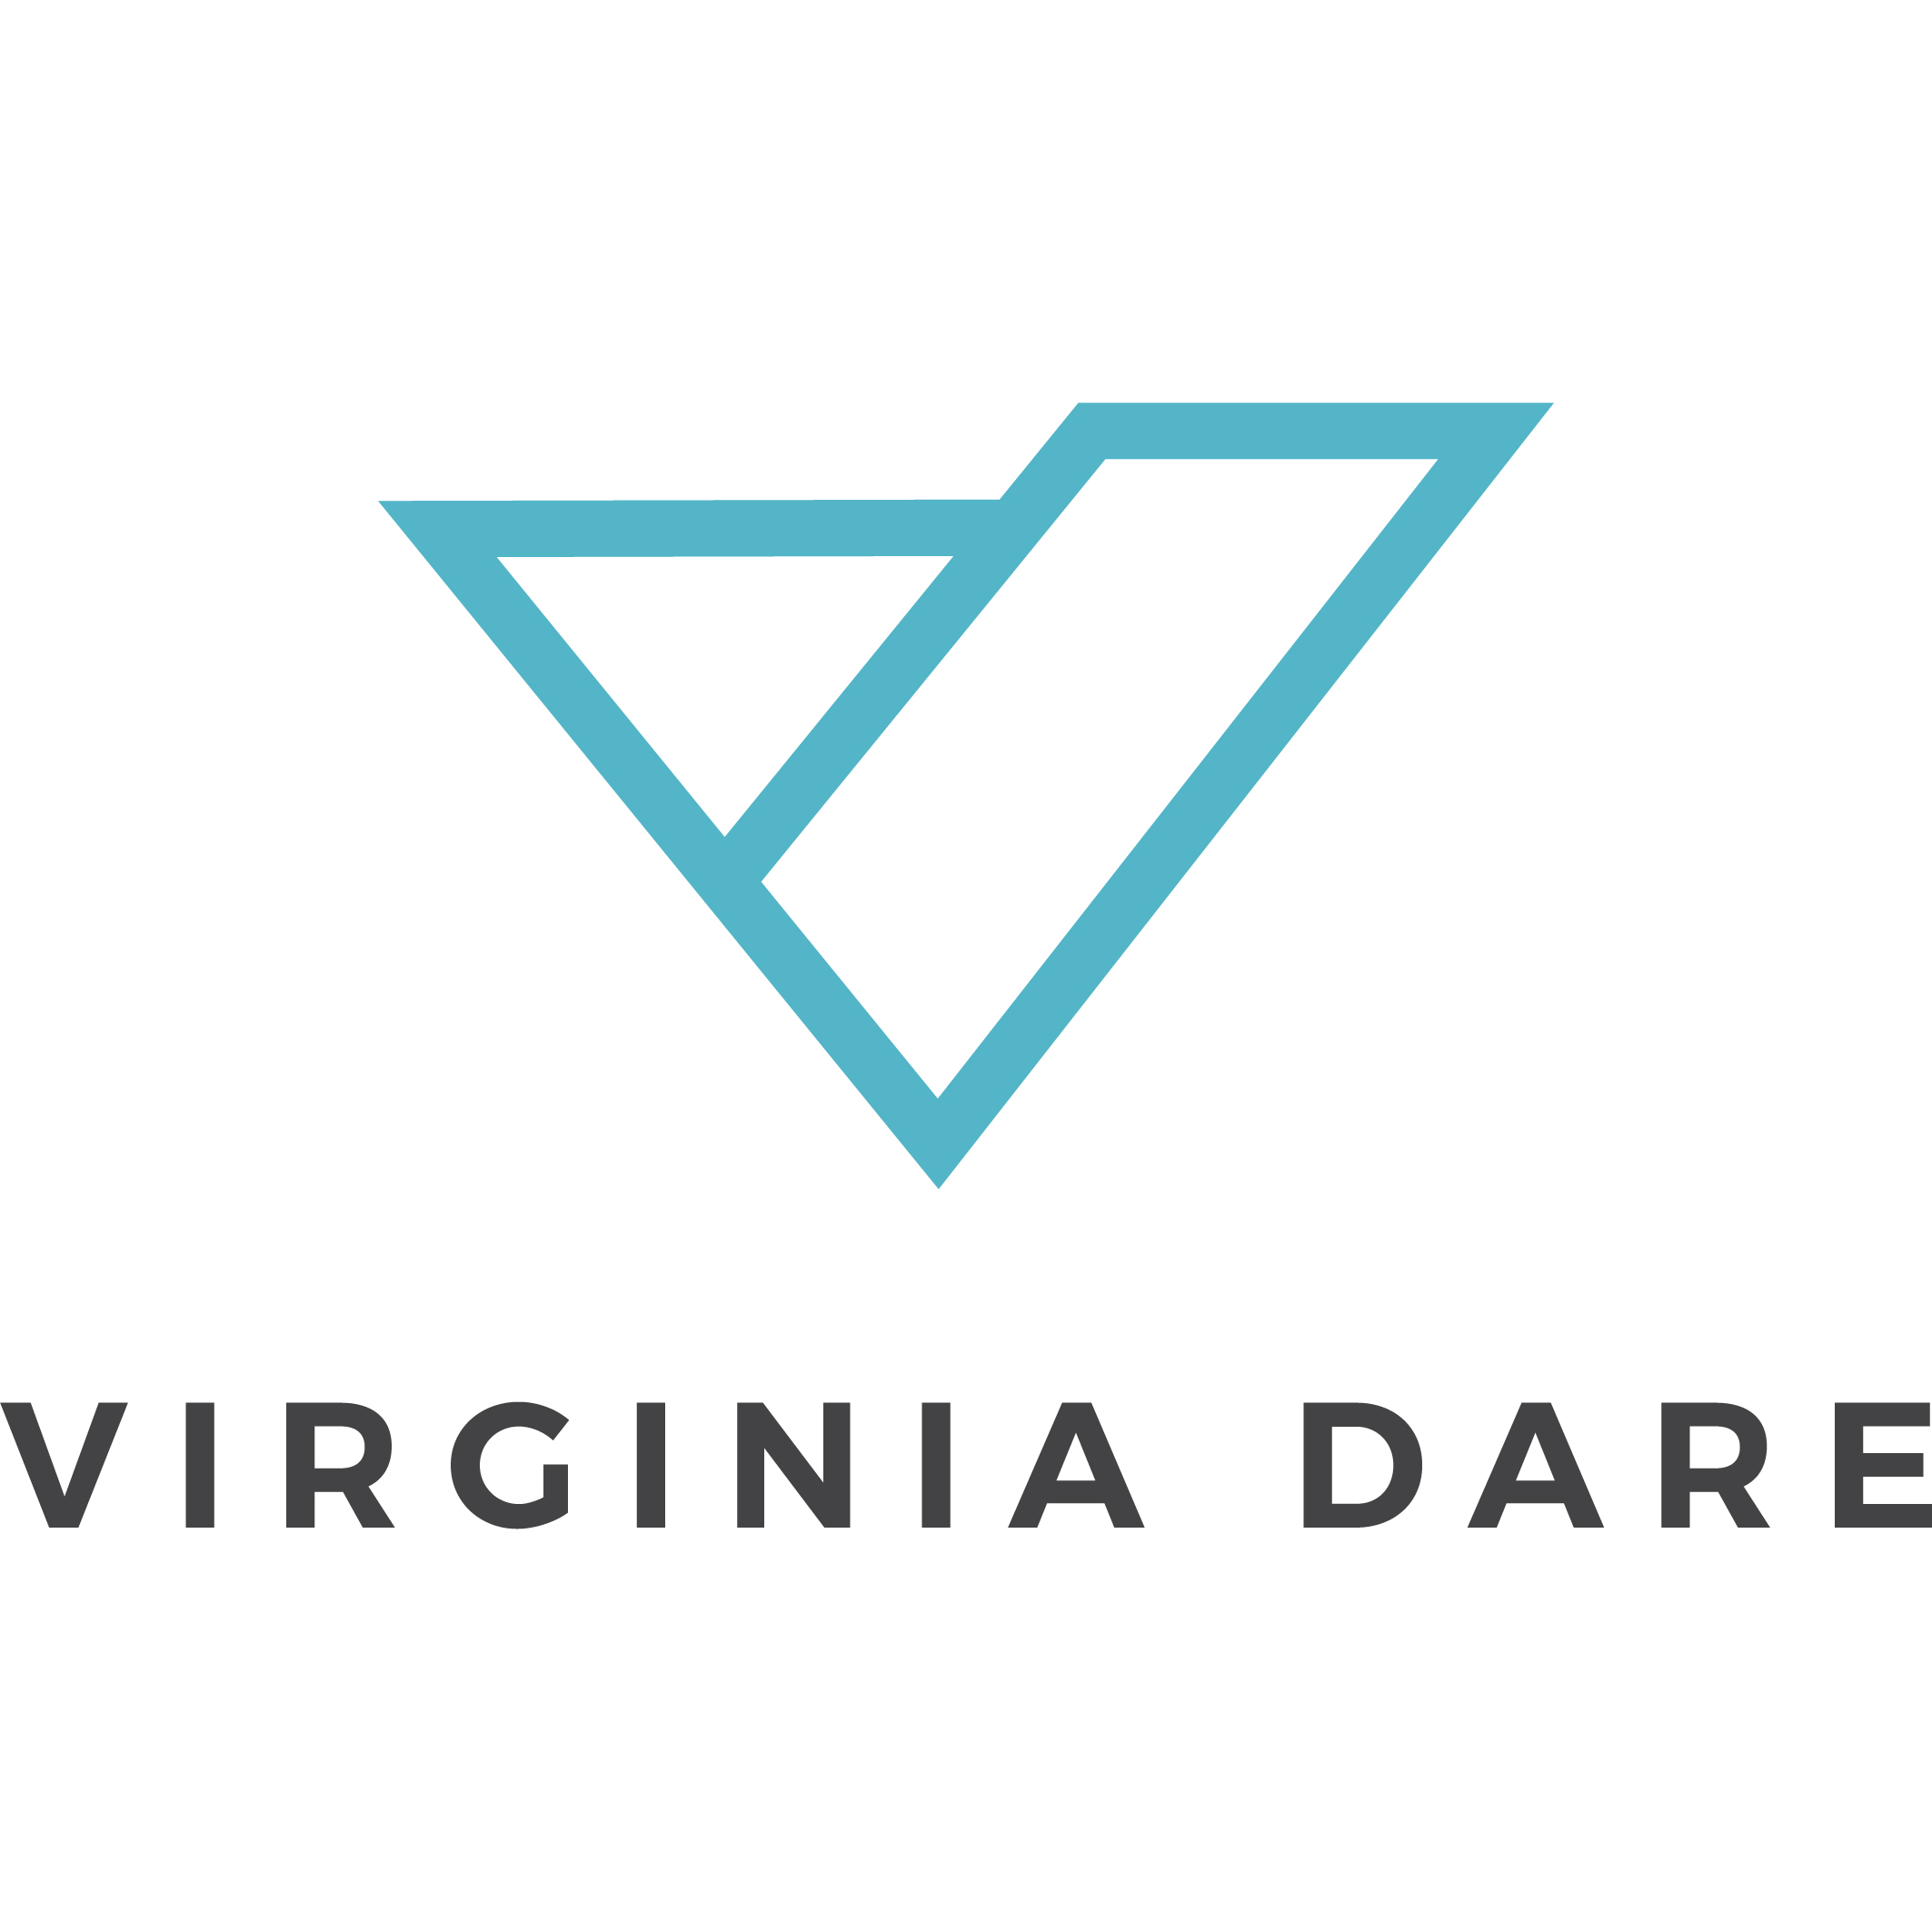 Virginia Dare - sponsoring BevNET Live Winter 2018